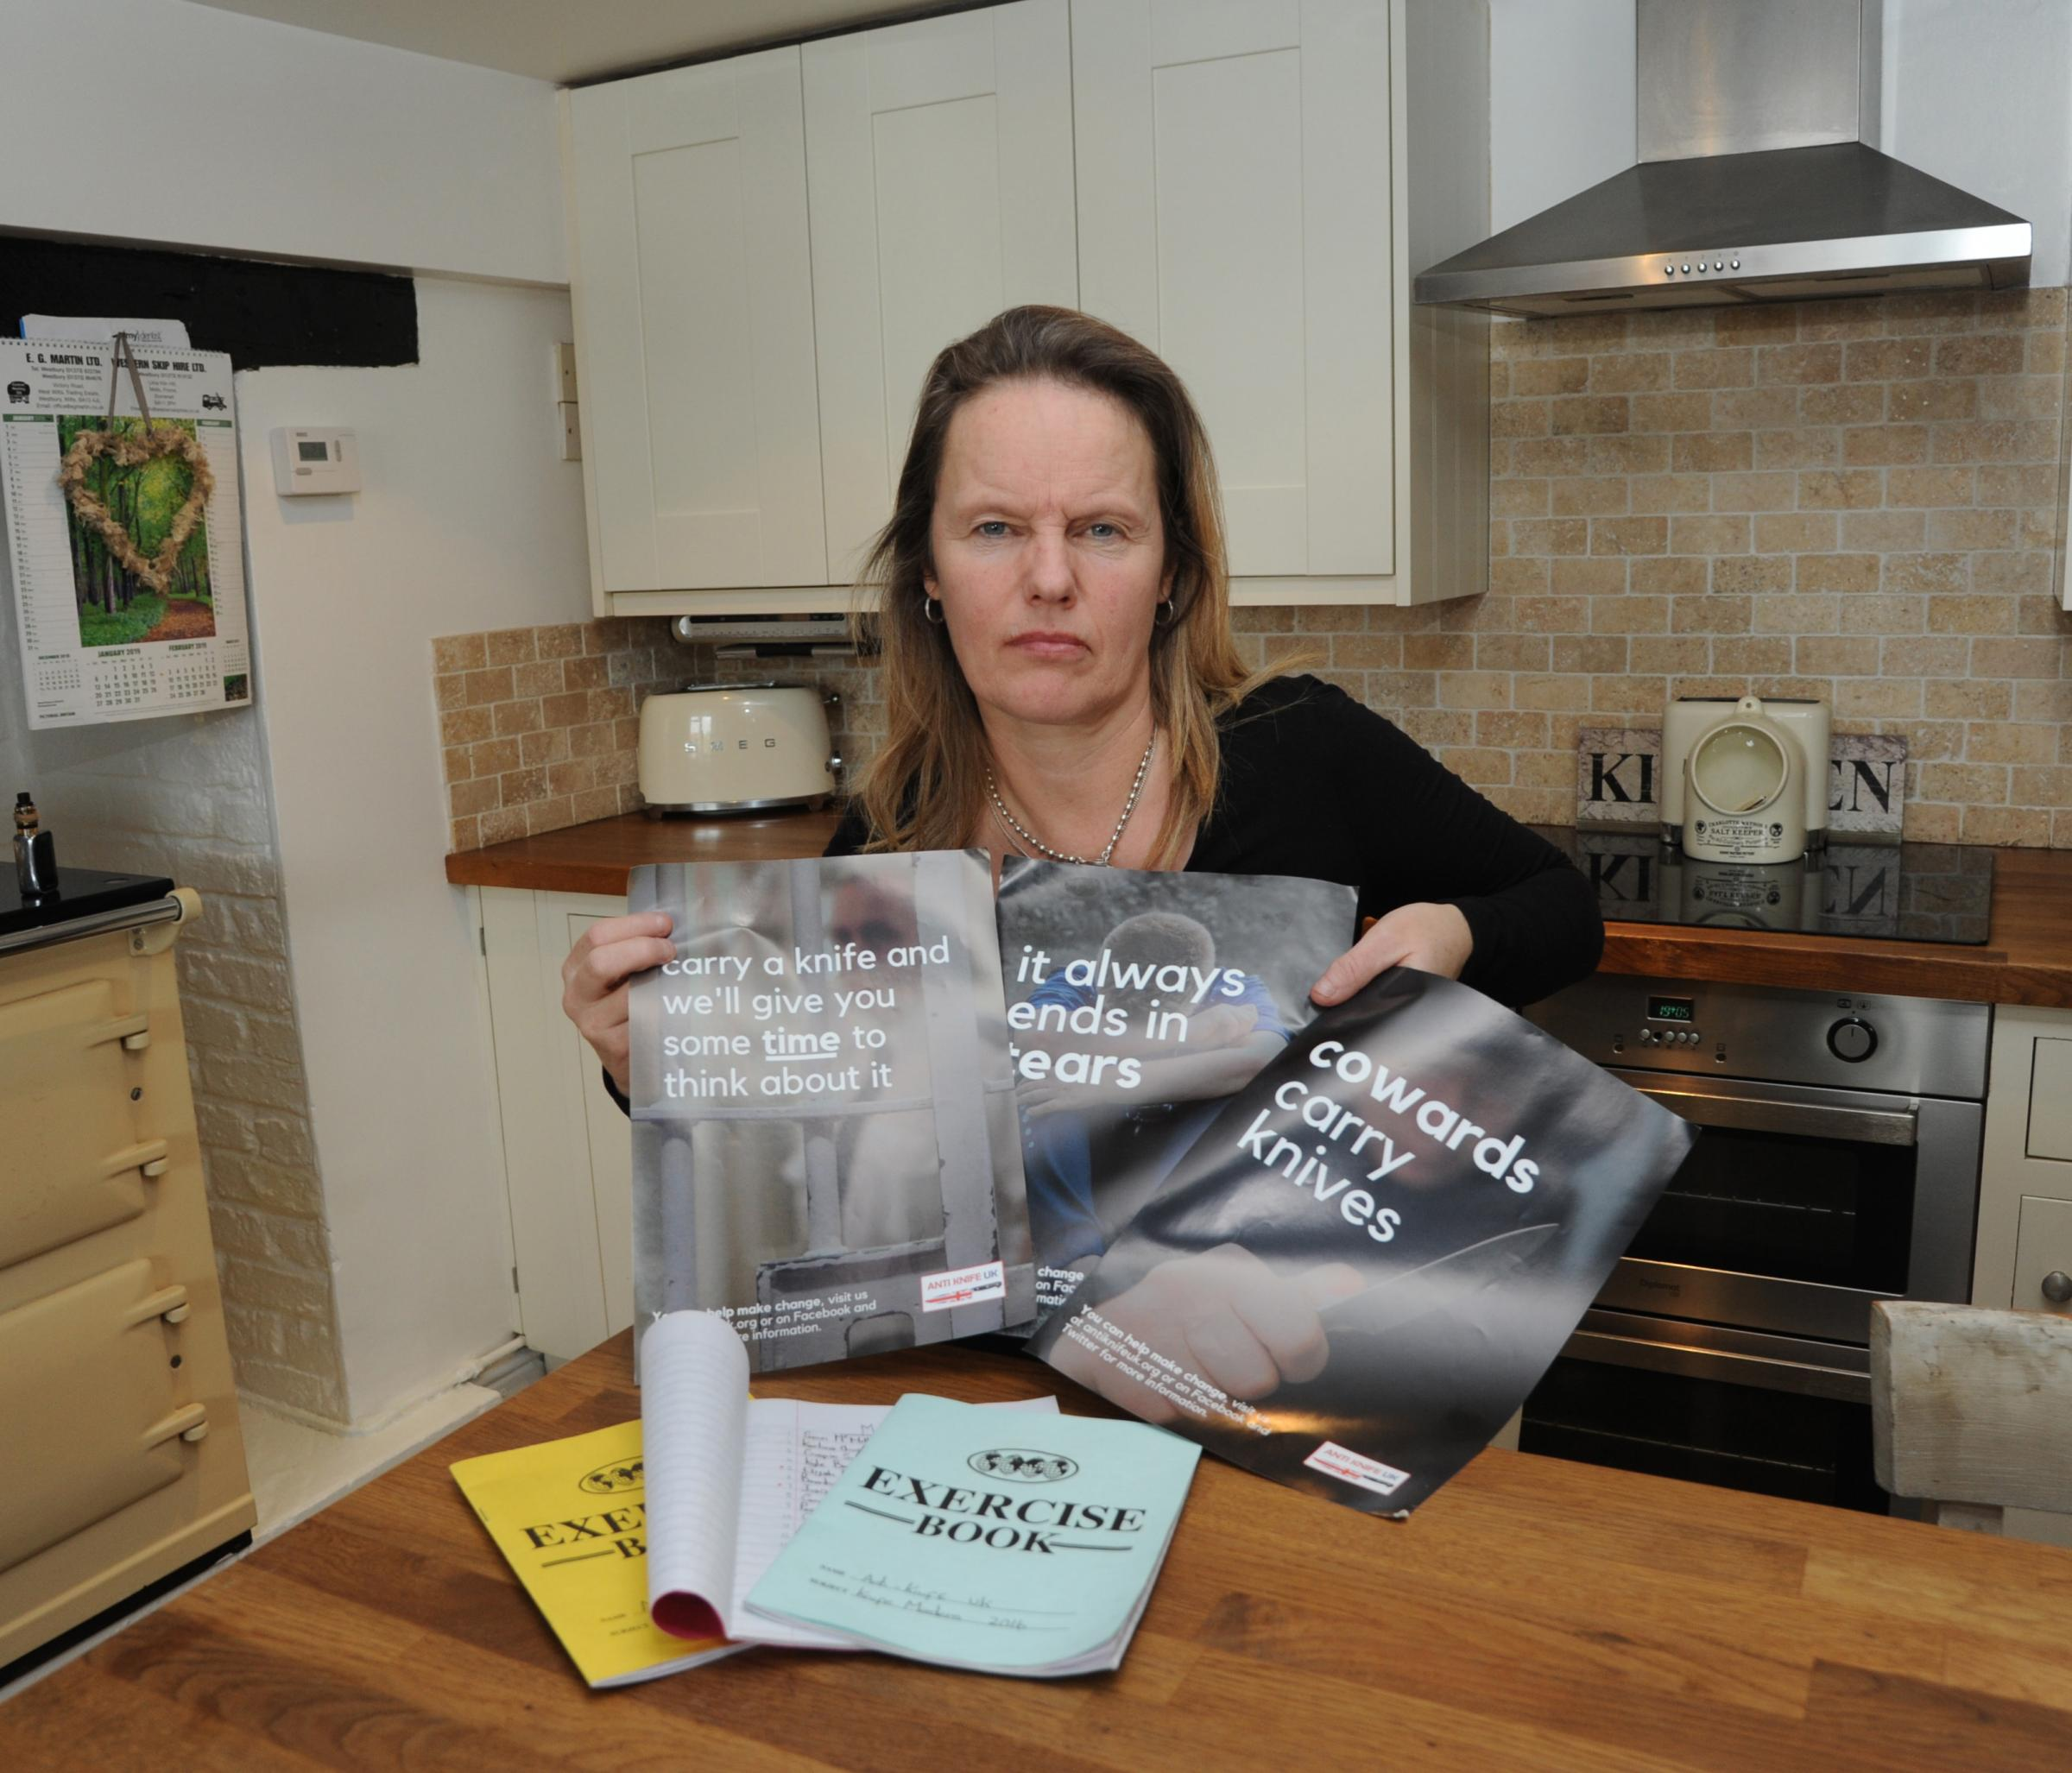 Anti Knife campaign with Emma Caley-Taylor. Emma Caley � Taylor with her anti knife campaign and the record of those who have lost their lives  due to stabbings. Photo Trevor Porter 60277 1..